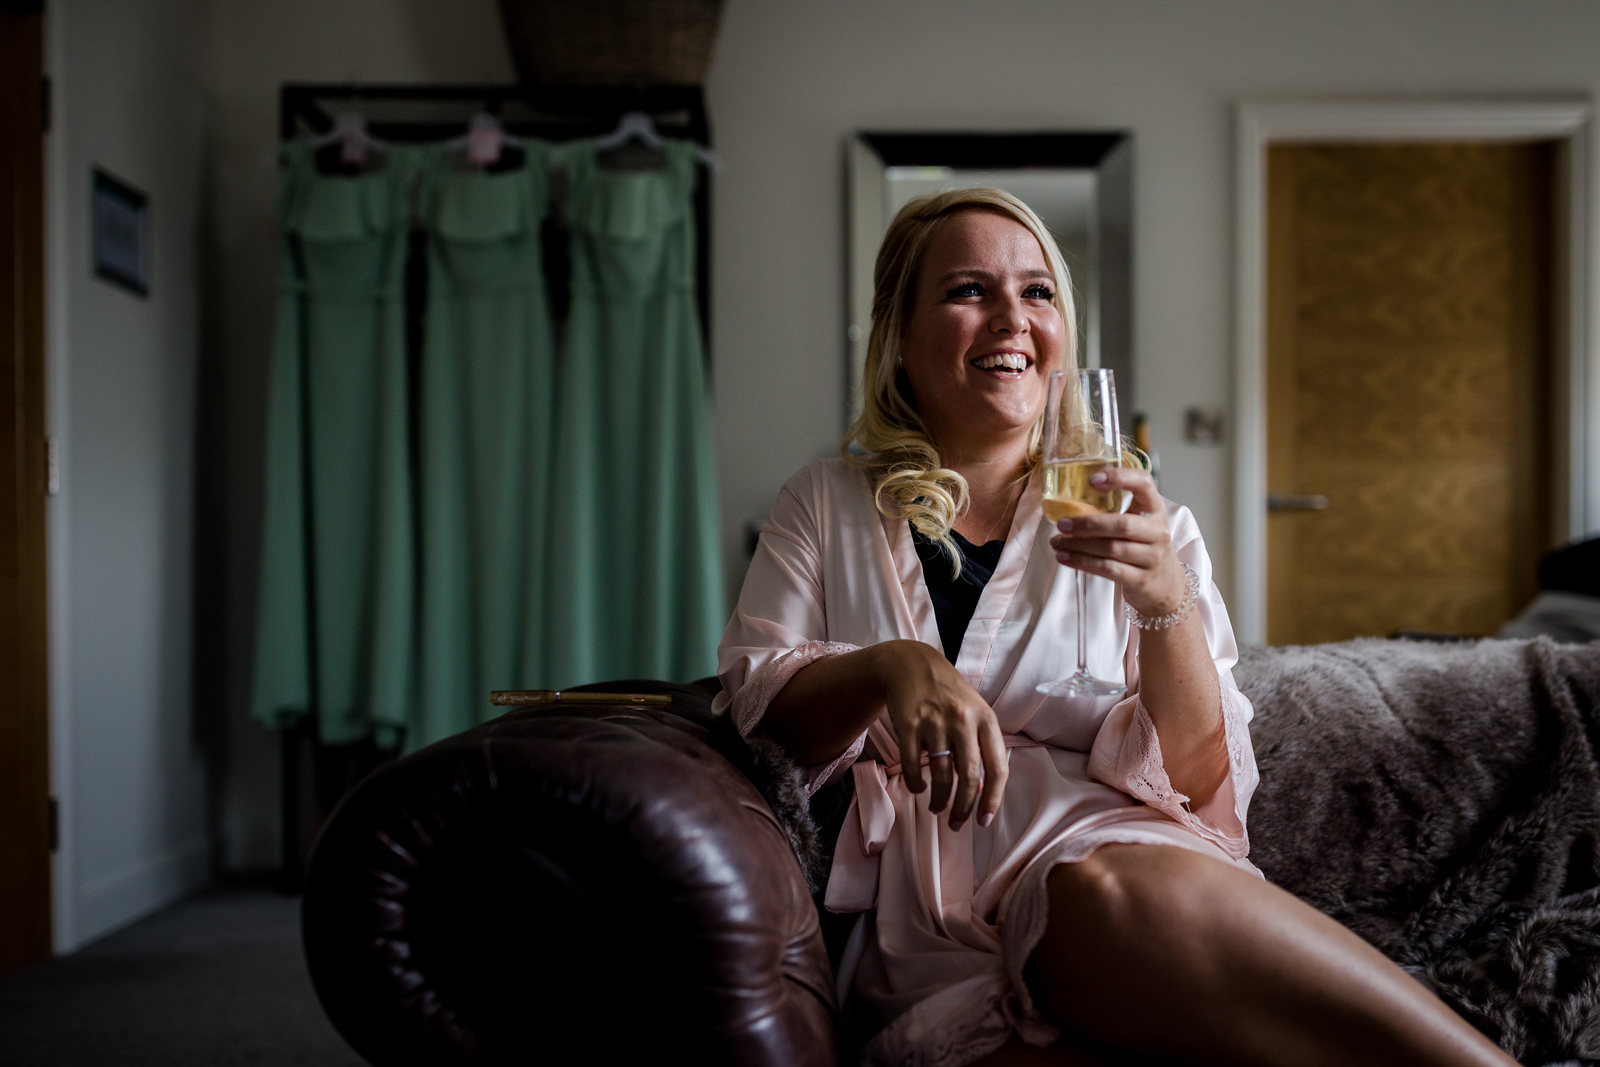 a bridesmaid drinking champagne with mint green bridesmaids dresses hanging in the background